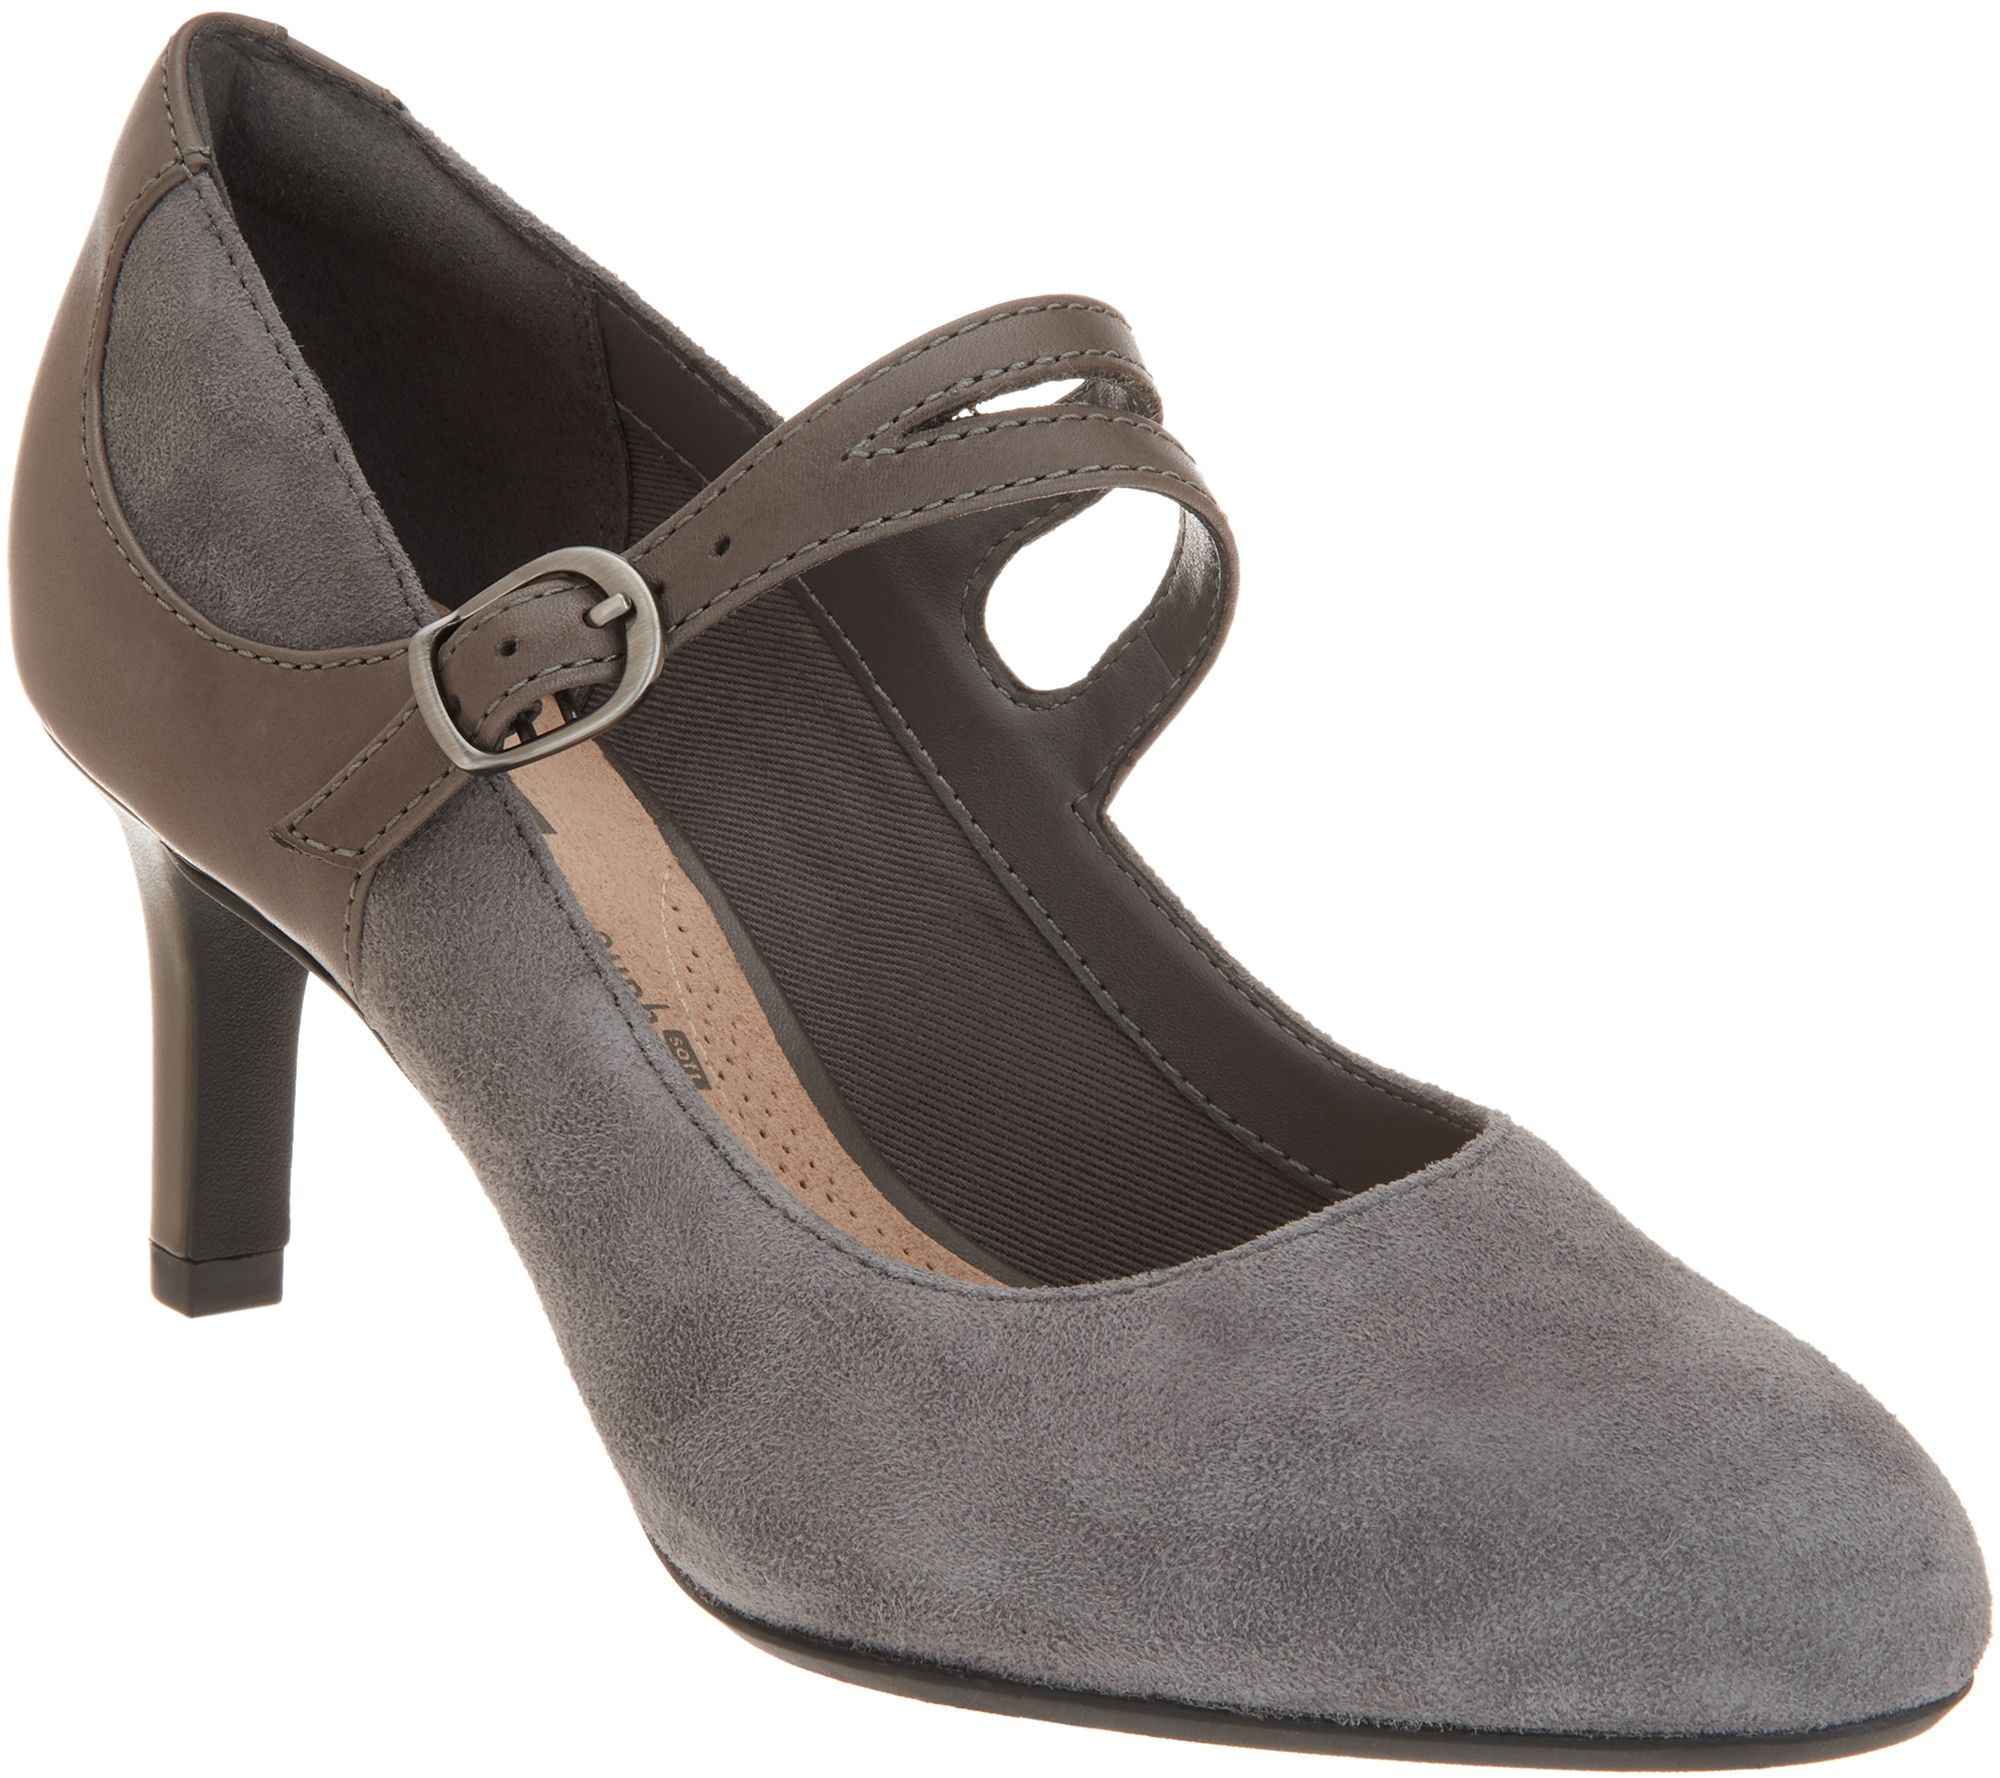 Clarks Collection Suede Pumps Dancer Reese —